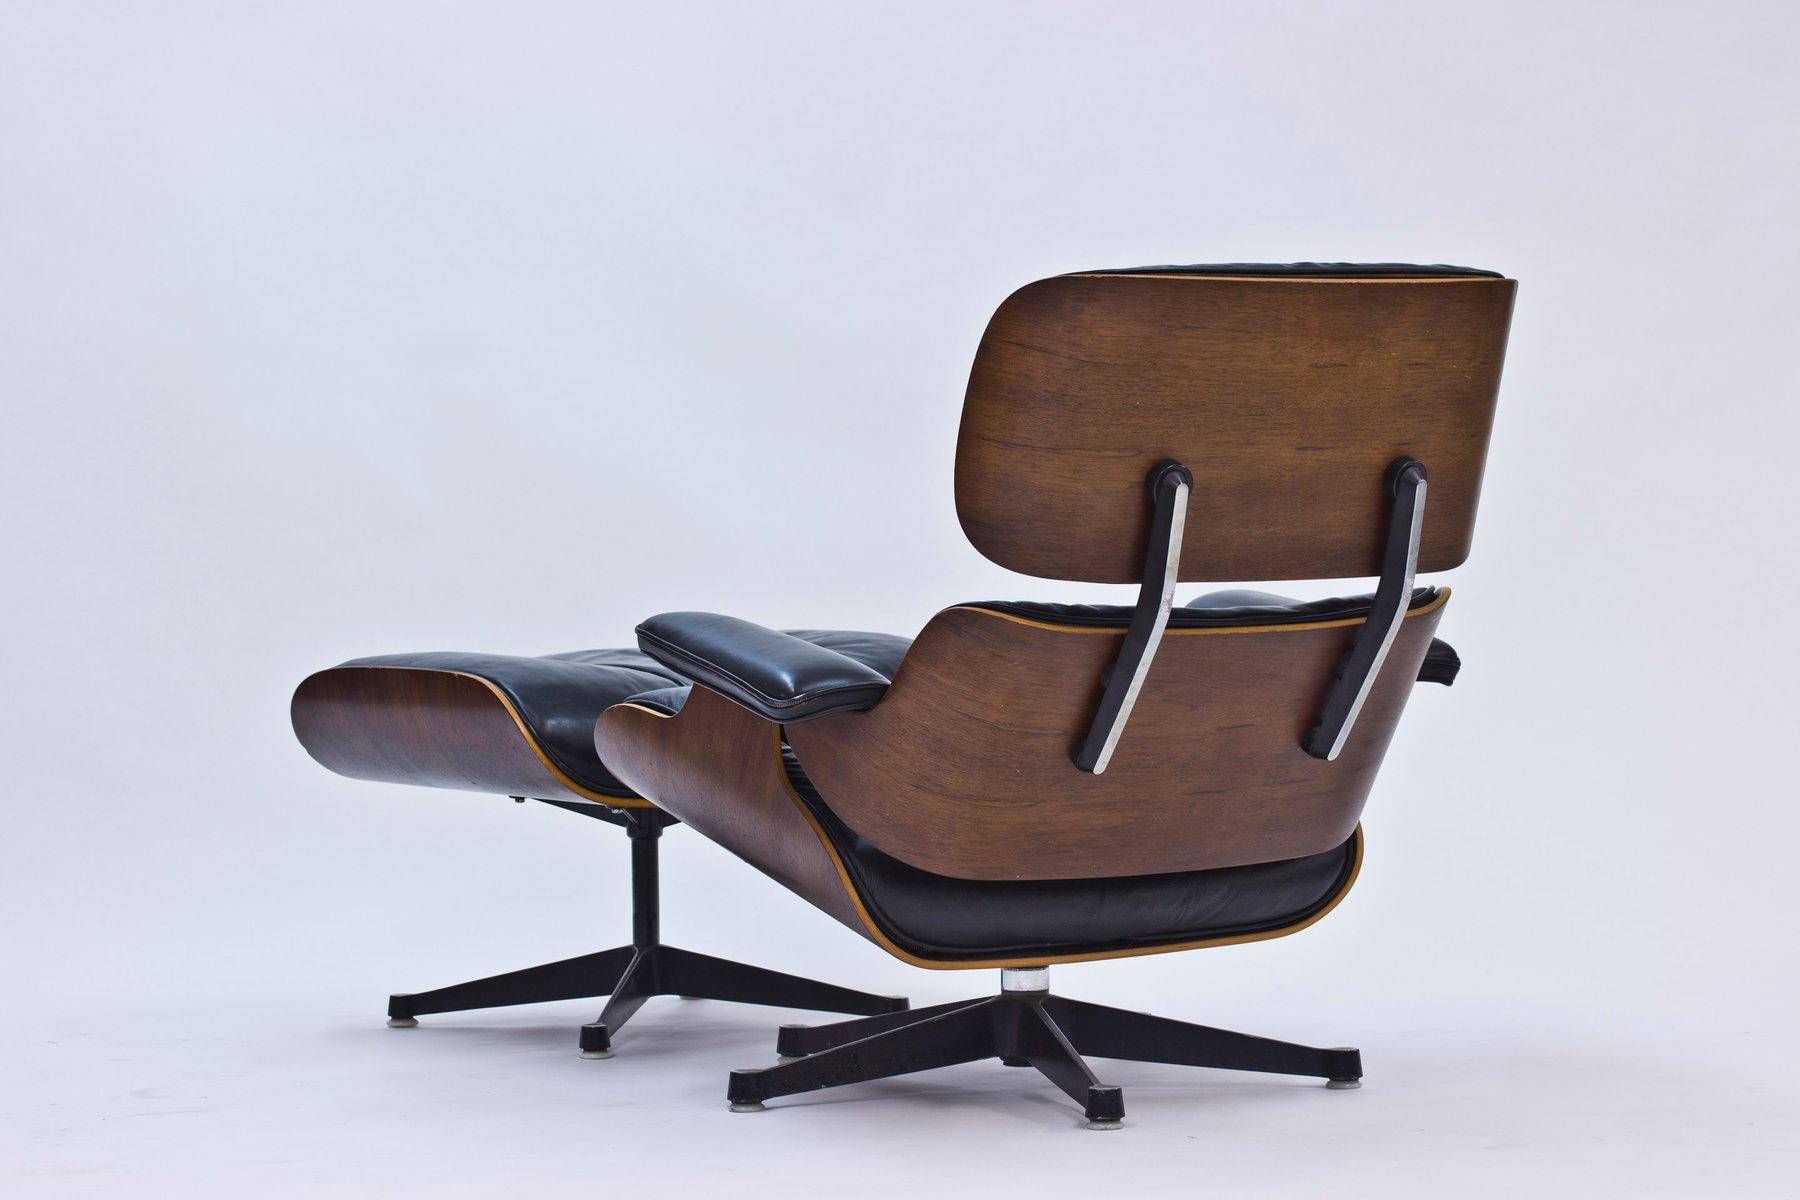 lounge chair and ottoman by charles and ray eames for herman miller 1956 for sale at pamono. Black Bedroom Furniture Sets. Home Design Ideas